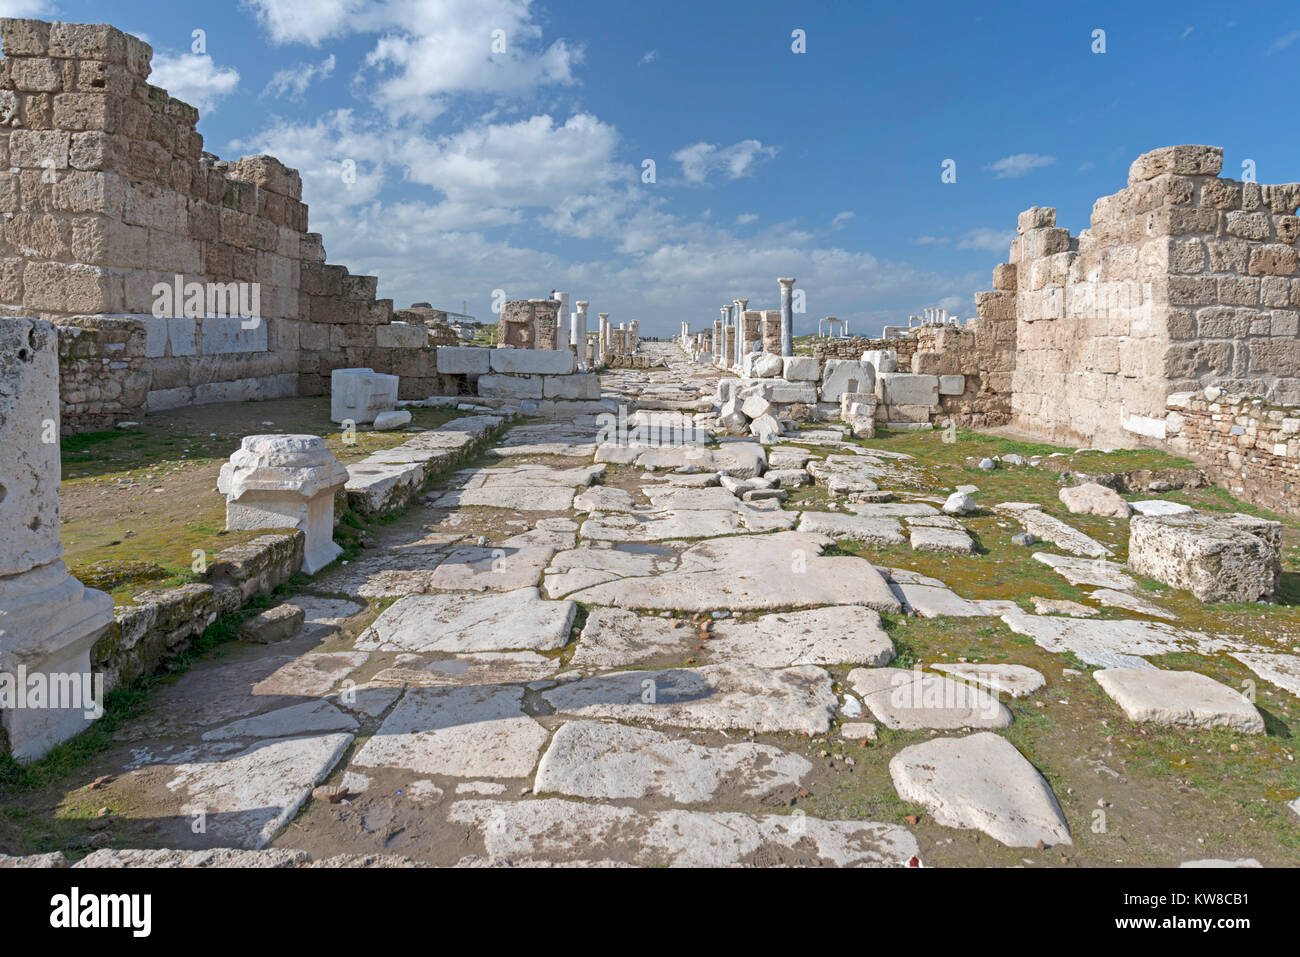 JANUARY 24,2015 DENIZLI.Laodiceia was located in the Hellenistic regions of Caria and Lydia, which later became - Stock Image